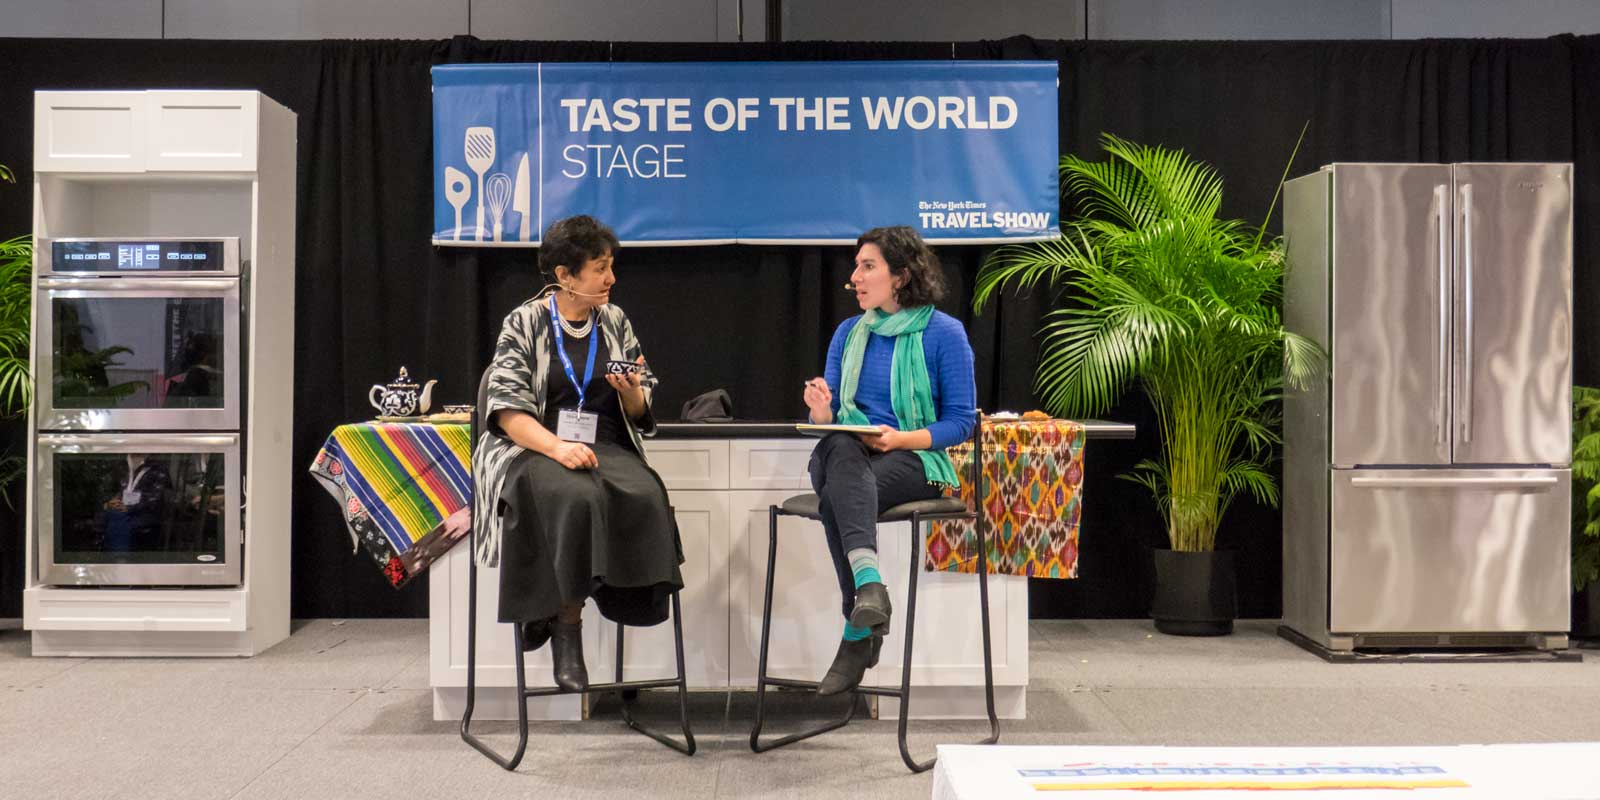 Damira Sonya League of Kitchens 2018 New York Times Travel Show